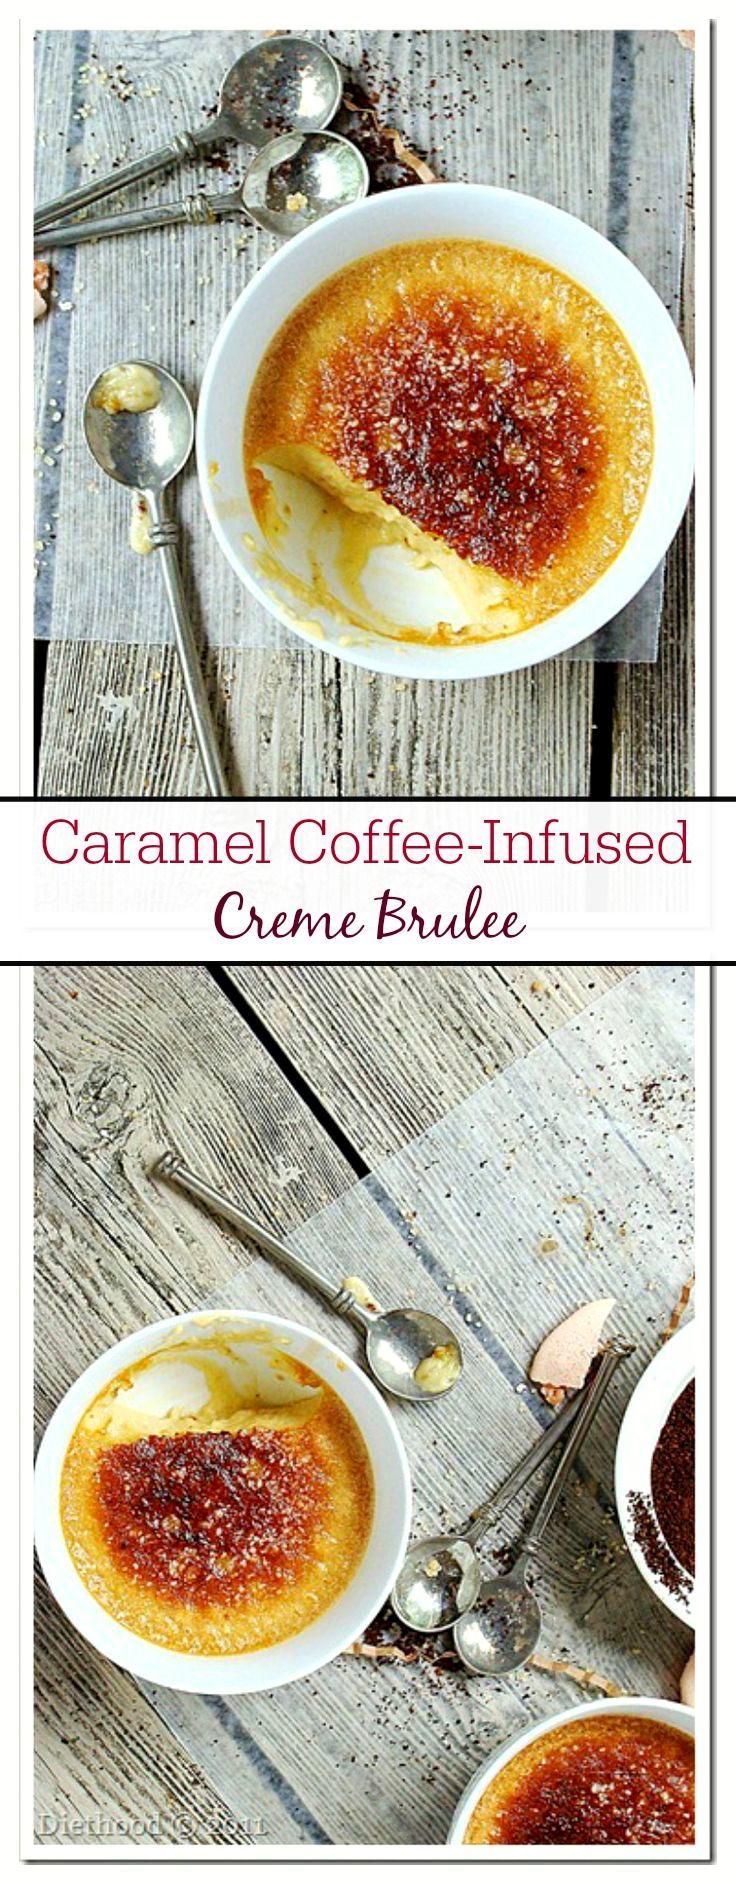 Caramel and Coffee Creme Brulee - This is the best Creme Brulee on Earth! It is one of my most requested desserts, especially around the Holidays!